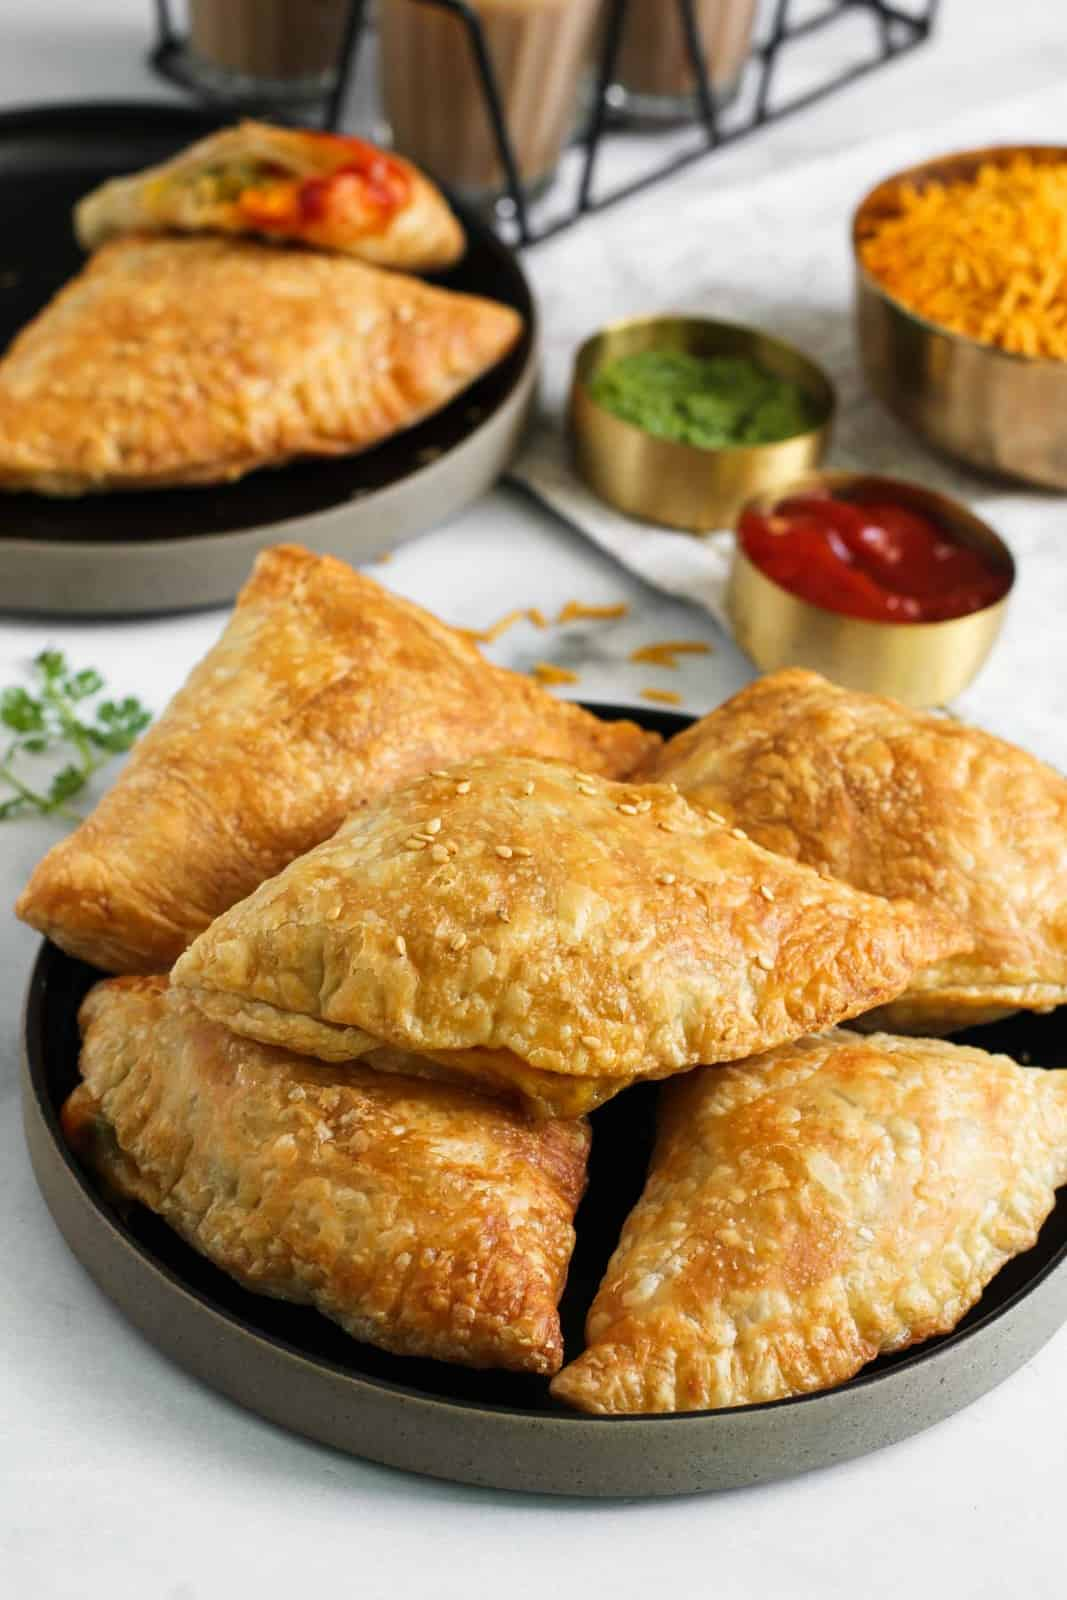 Jalapeno Cheese samosas in a black platter with chutney and ketchup on the side